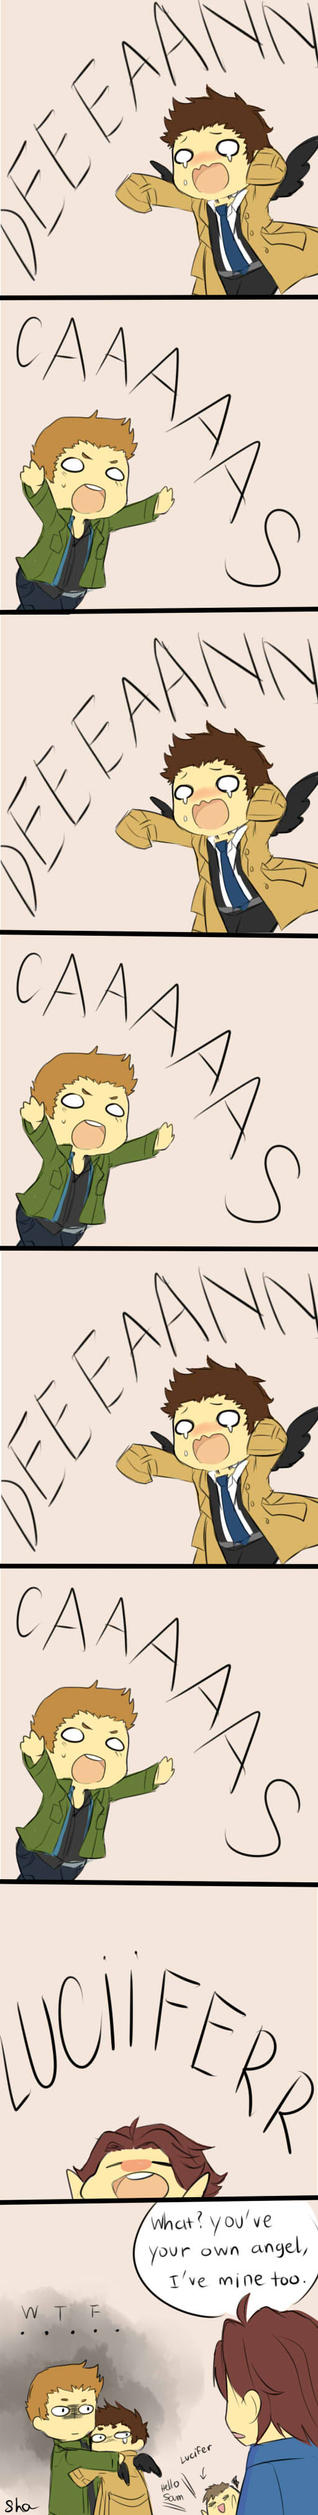 Destiel Strip 2 by ShaYepurr